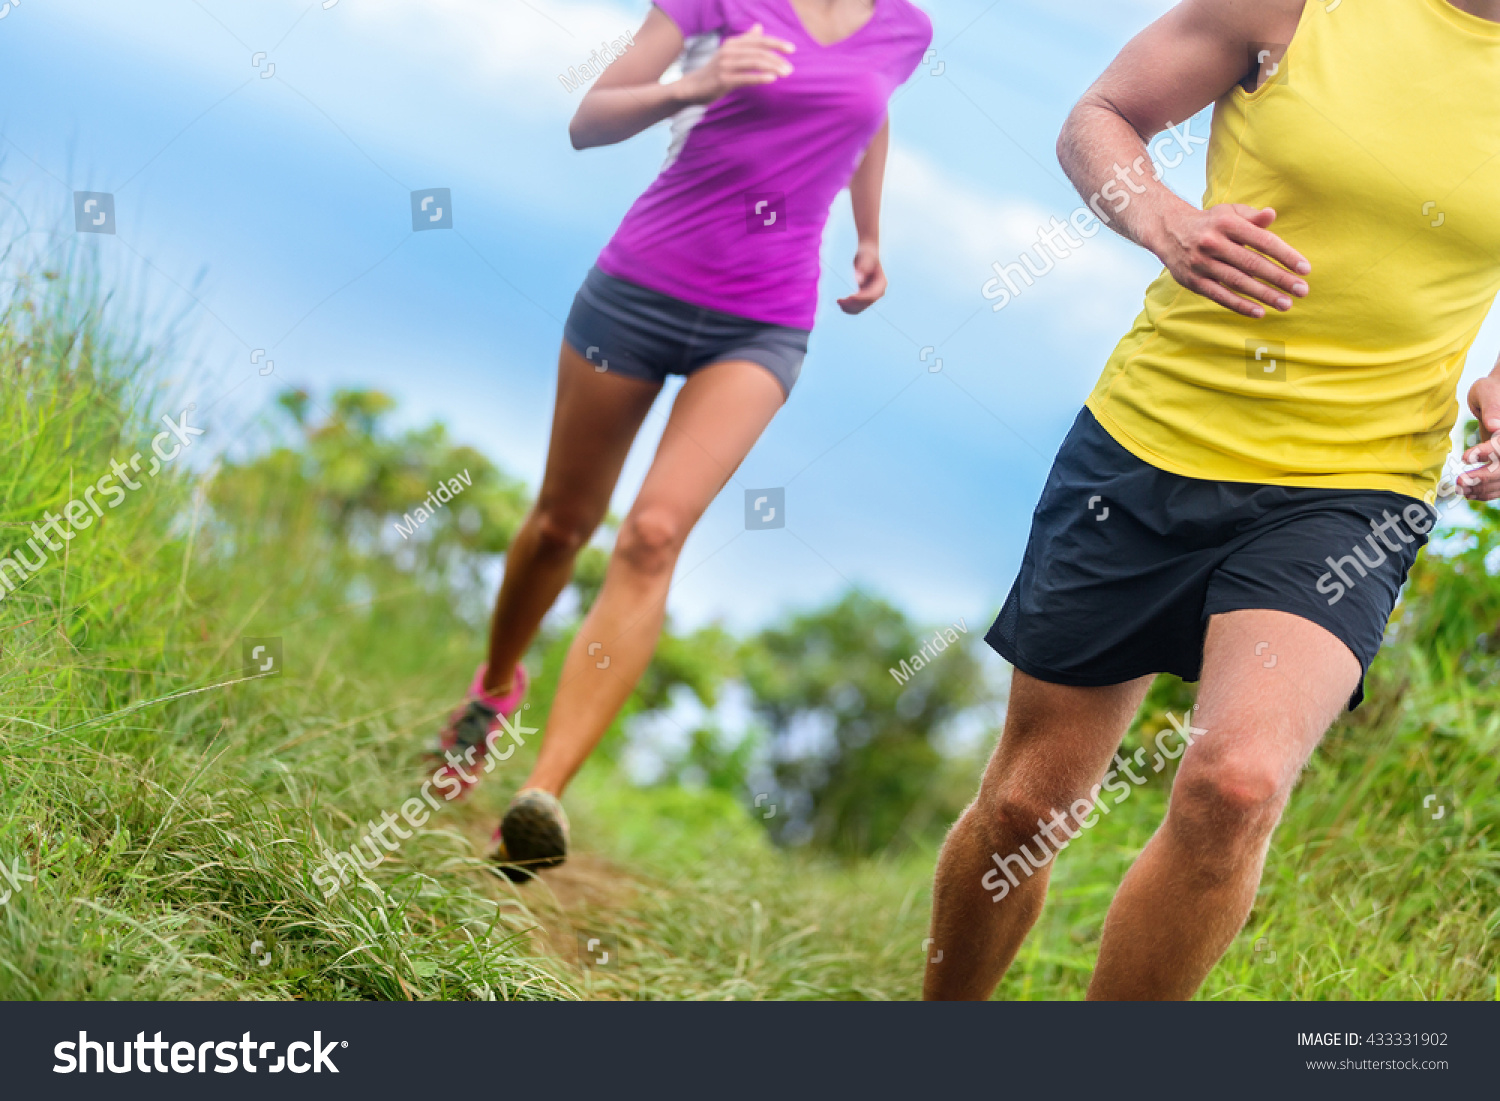 Fitness athletes trail running athletic legs closeup lower body crop of man and woman working out Sports people jogging in fast motion marathon race training on a nature path in shorts activewear